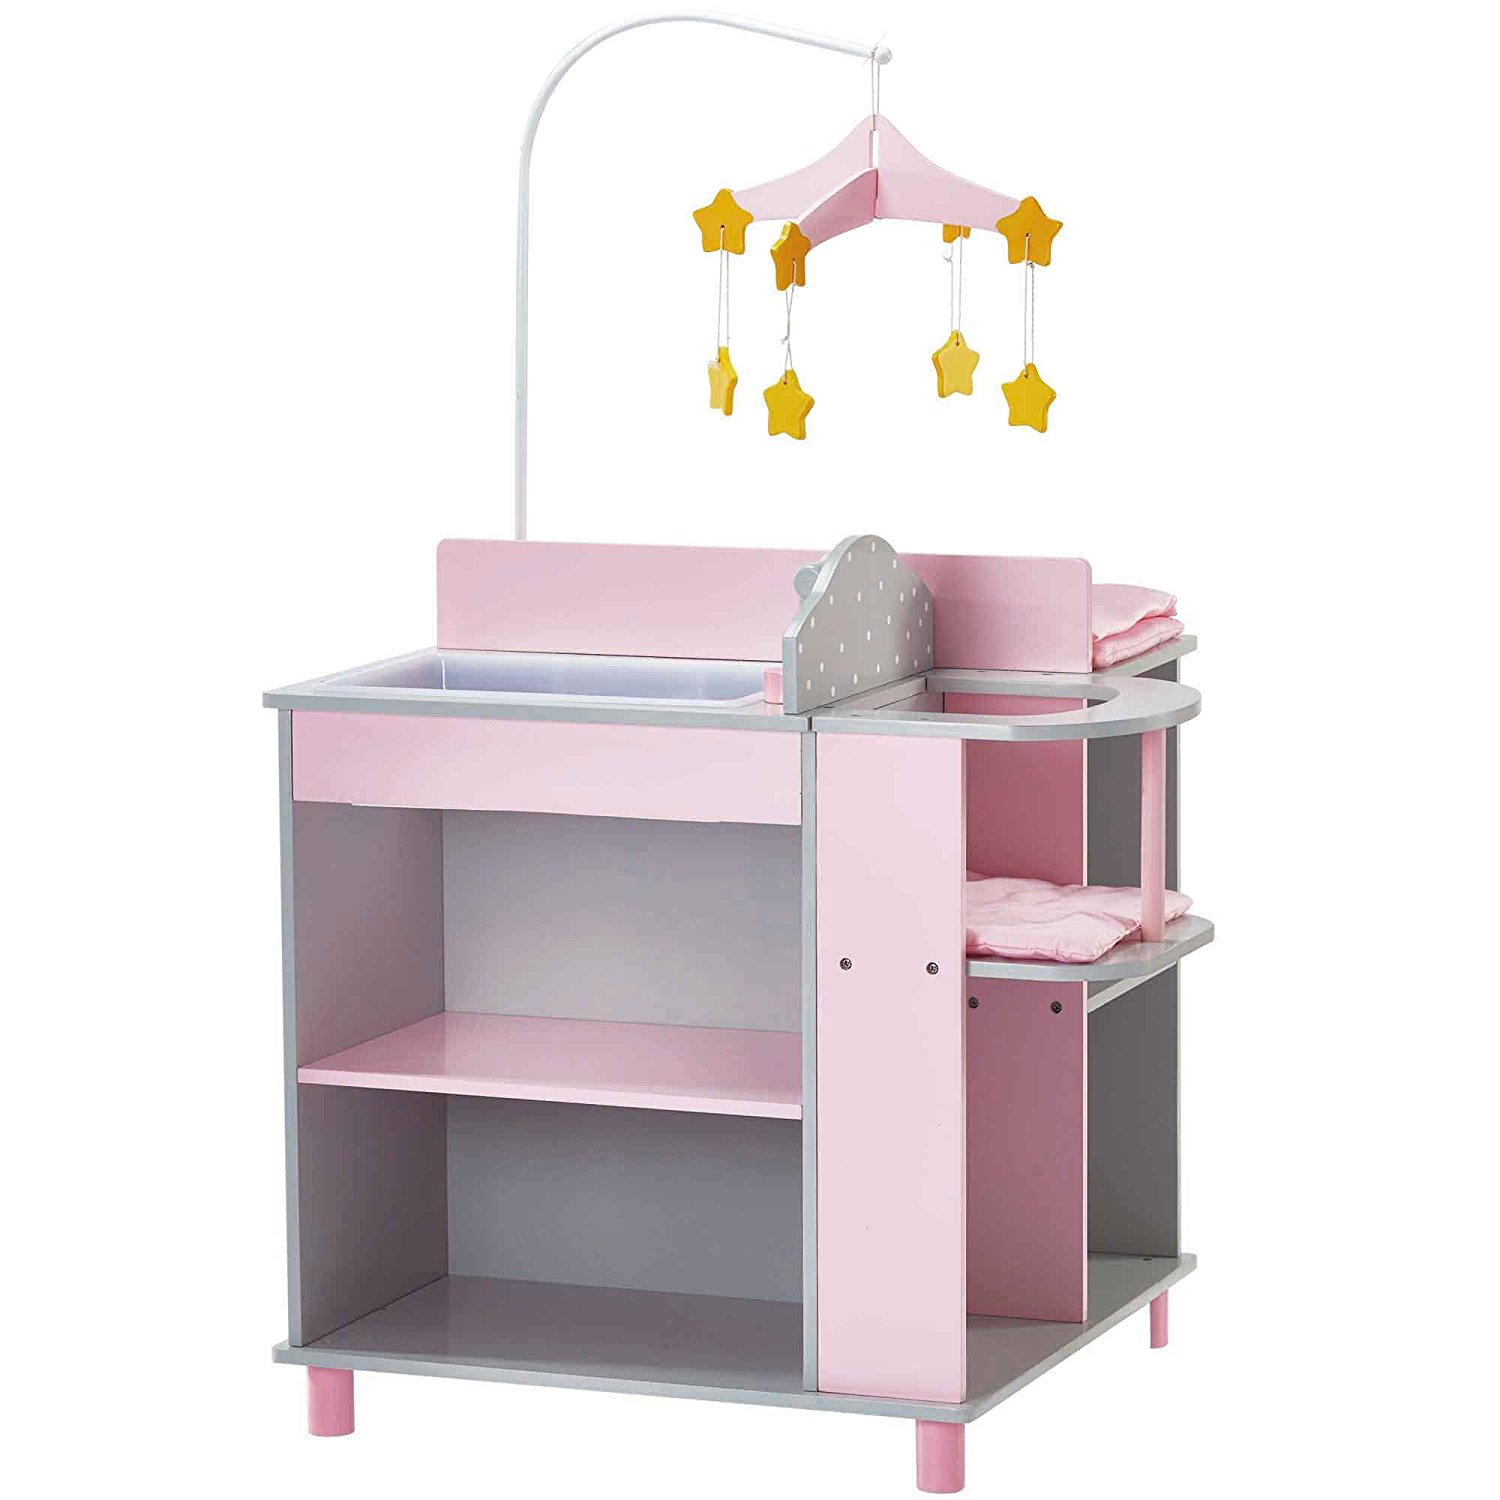 Charming and Cute Bitty Baby Changing Table: Bitty Baby Changing Table | Changing Table Hutch | Baby Changing Table Dresser